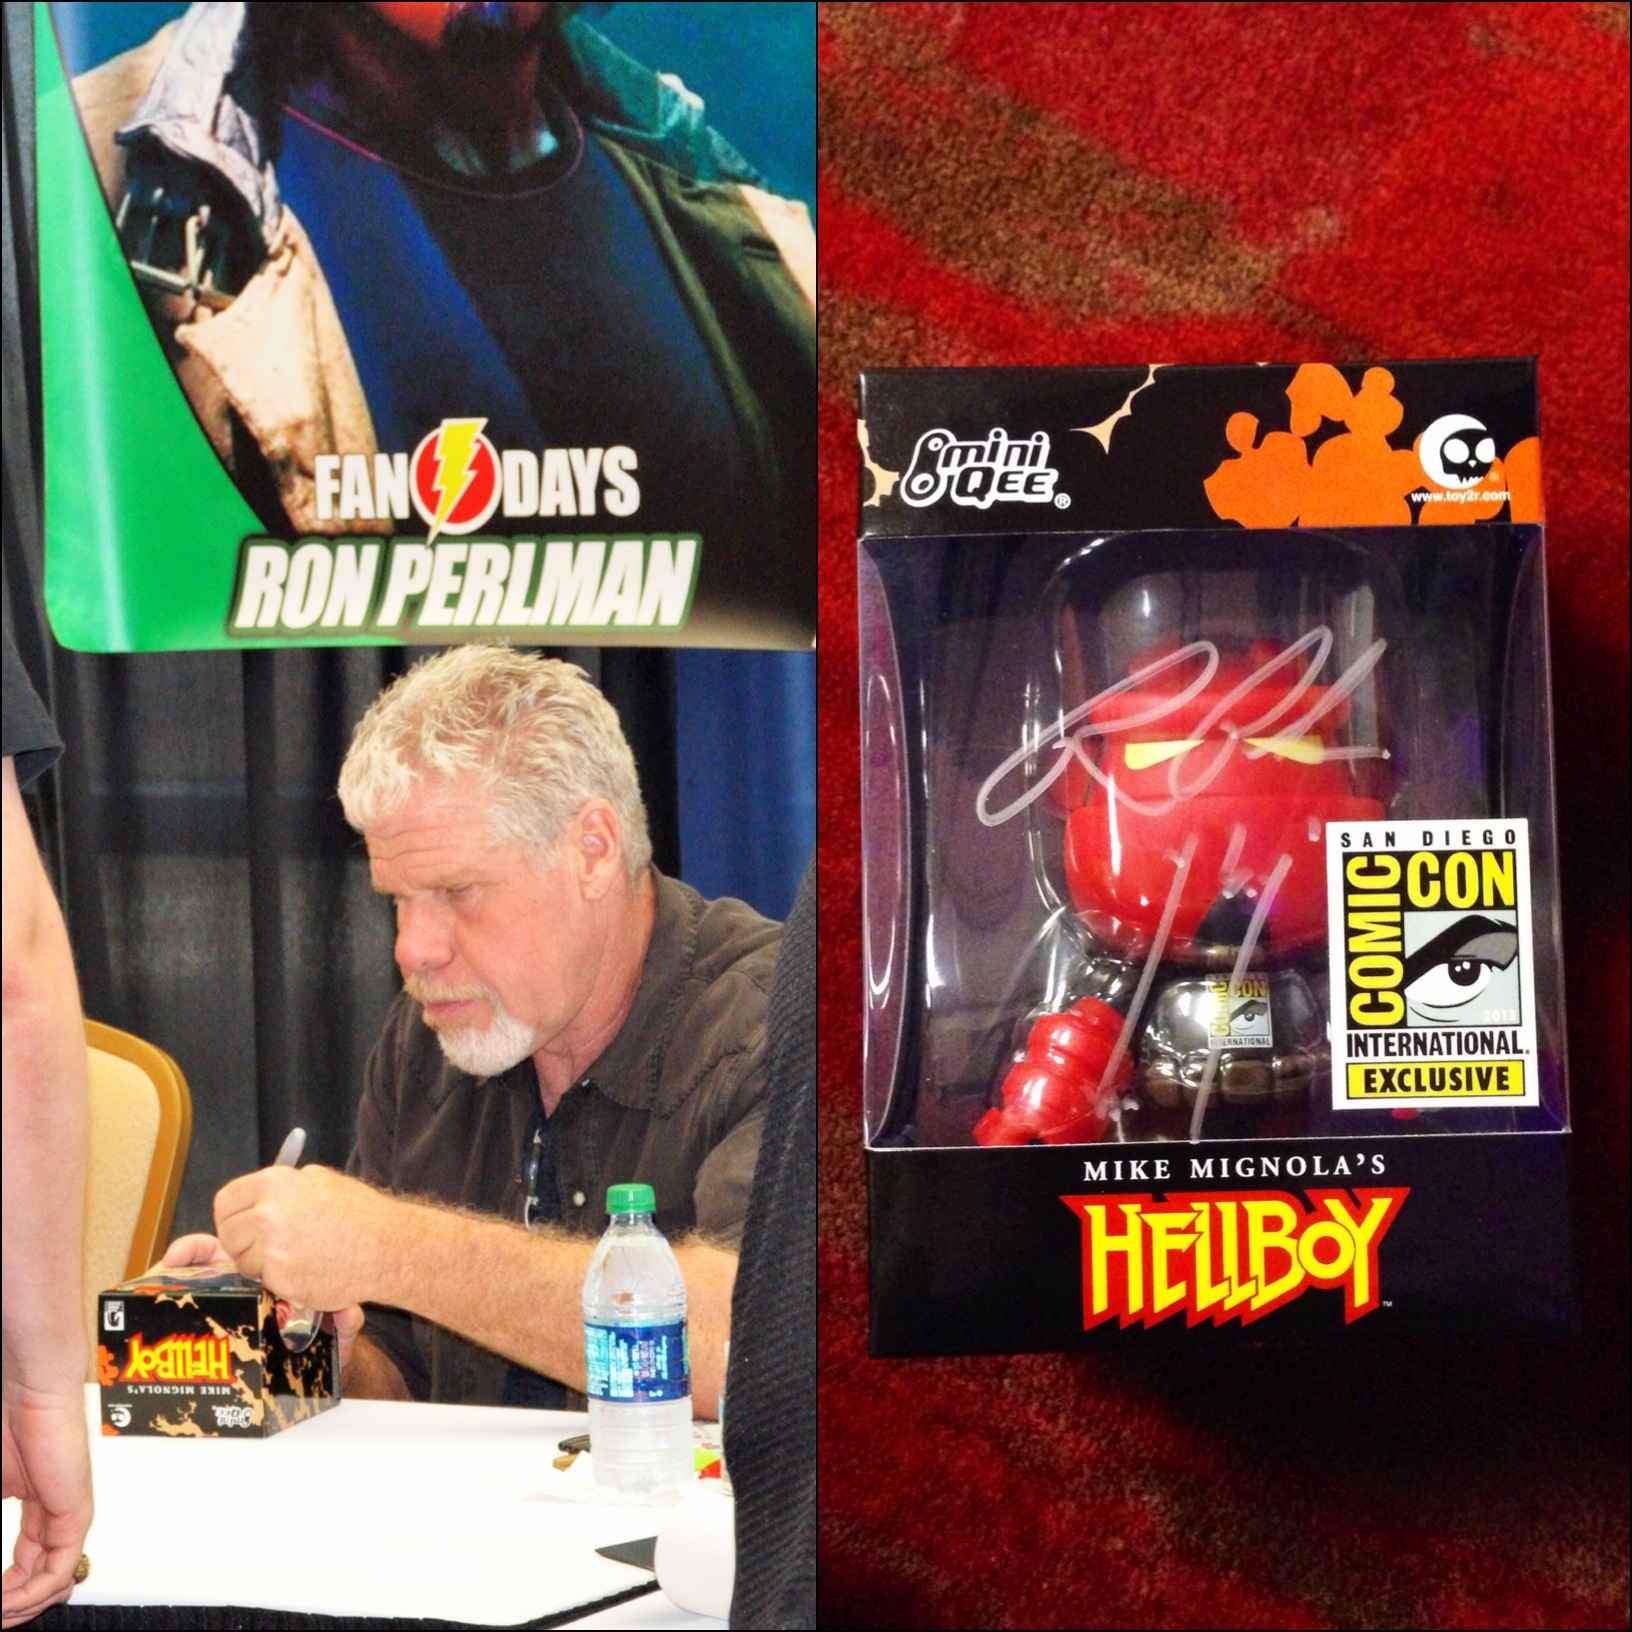 DallasFanDays - Ron Perlman Hellboy